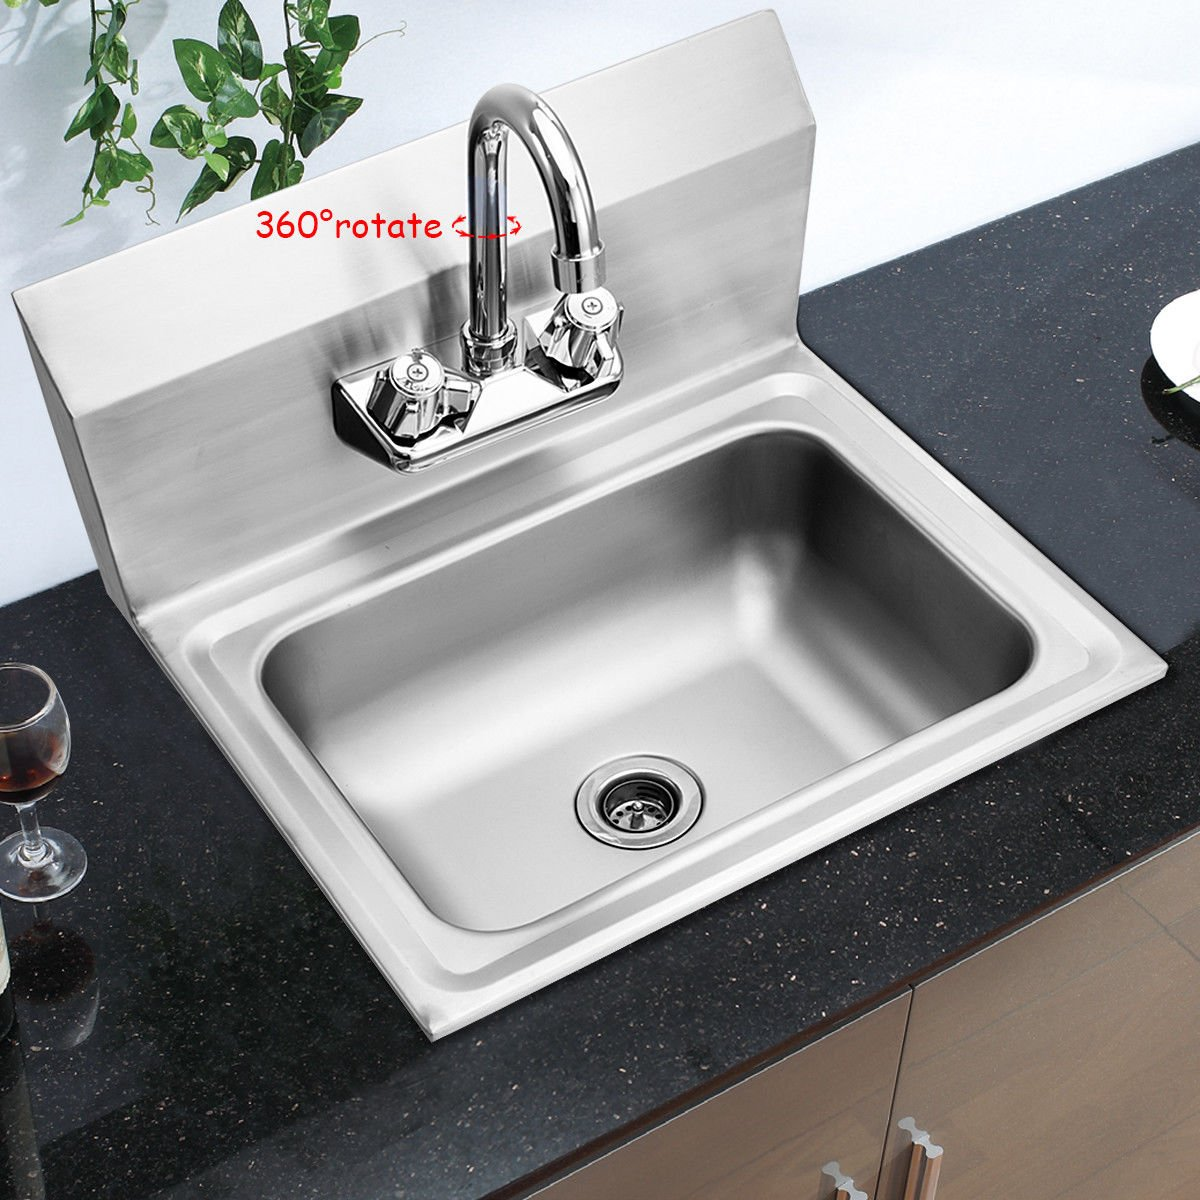 Giantex Commercial Stainless Steel Hand Washing Sink with Wall Mount Faucet Kitchen Heavy Duty Hot & Cold Temperature Water Inlet Washing Basin, ...